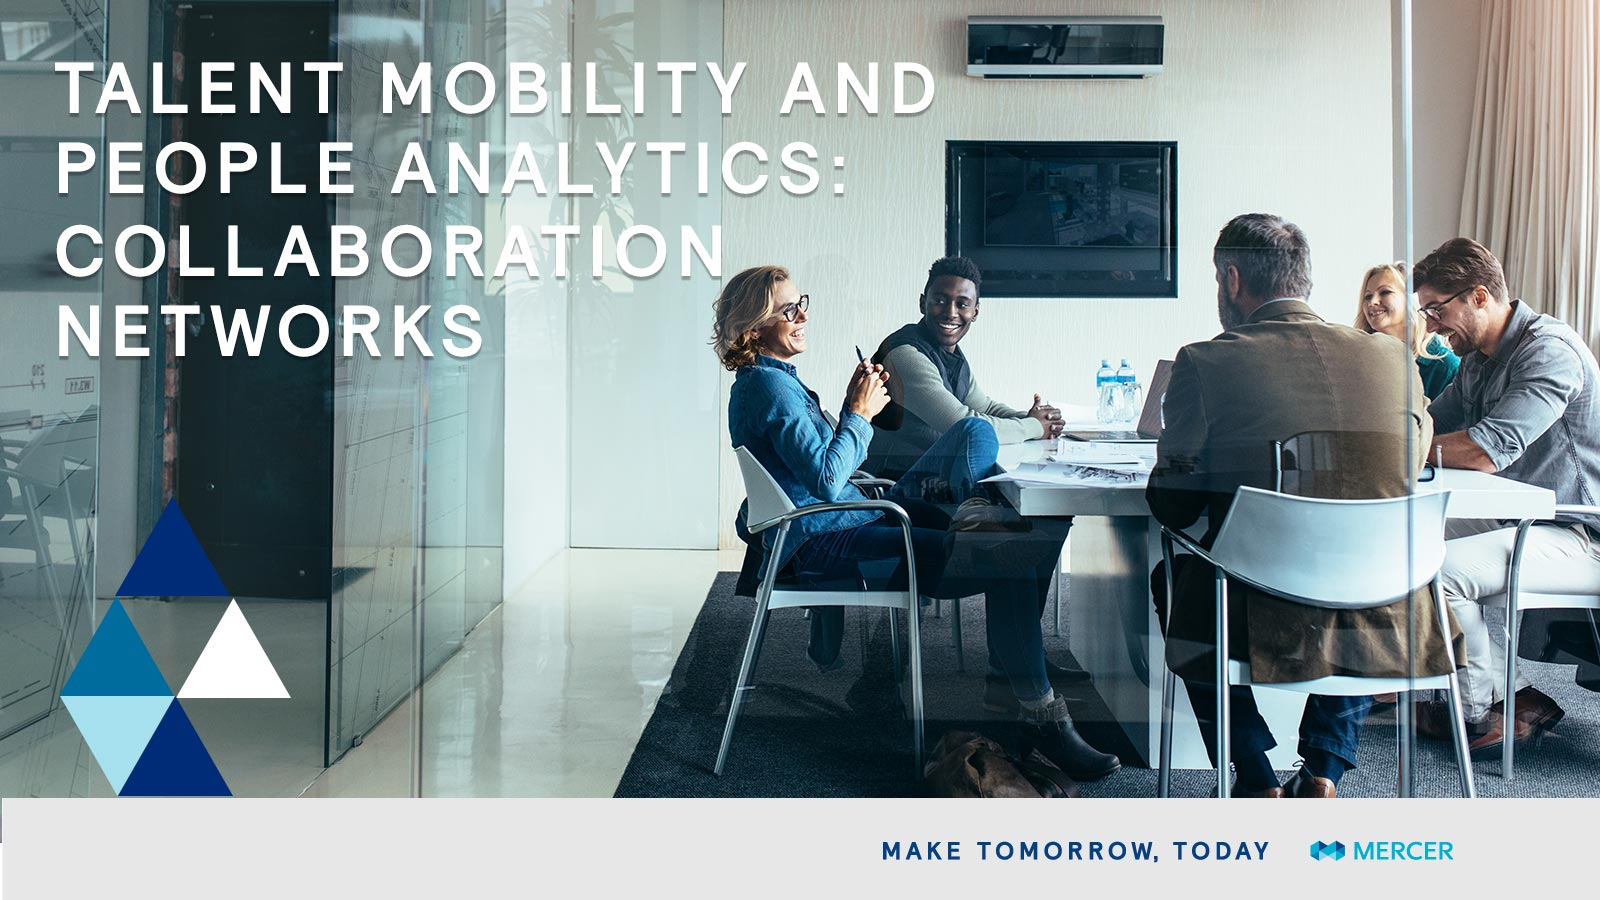 Talent Mobility and People Analytics: Collaboration Networks